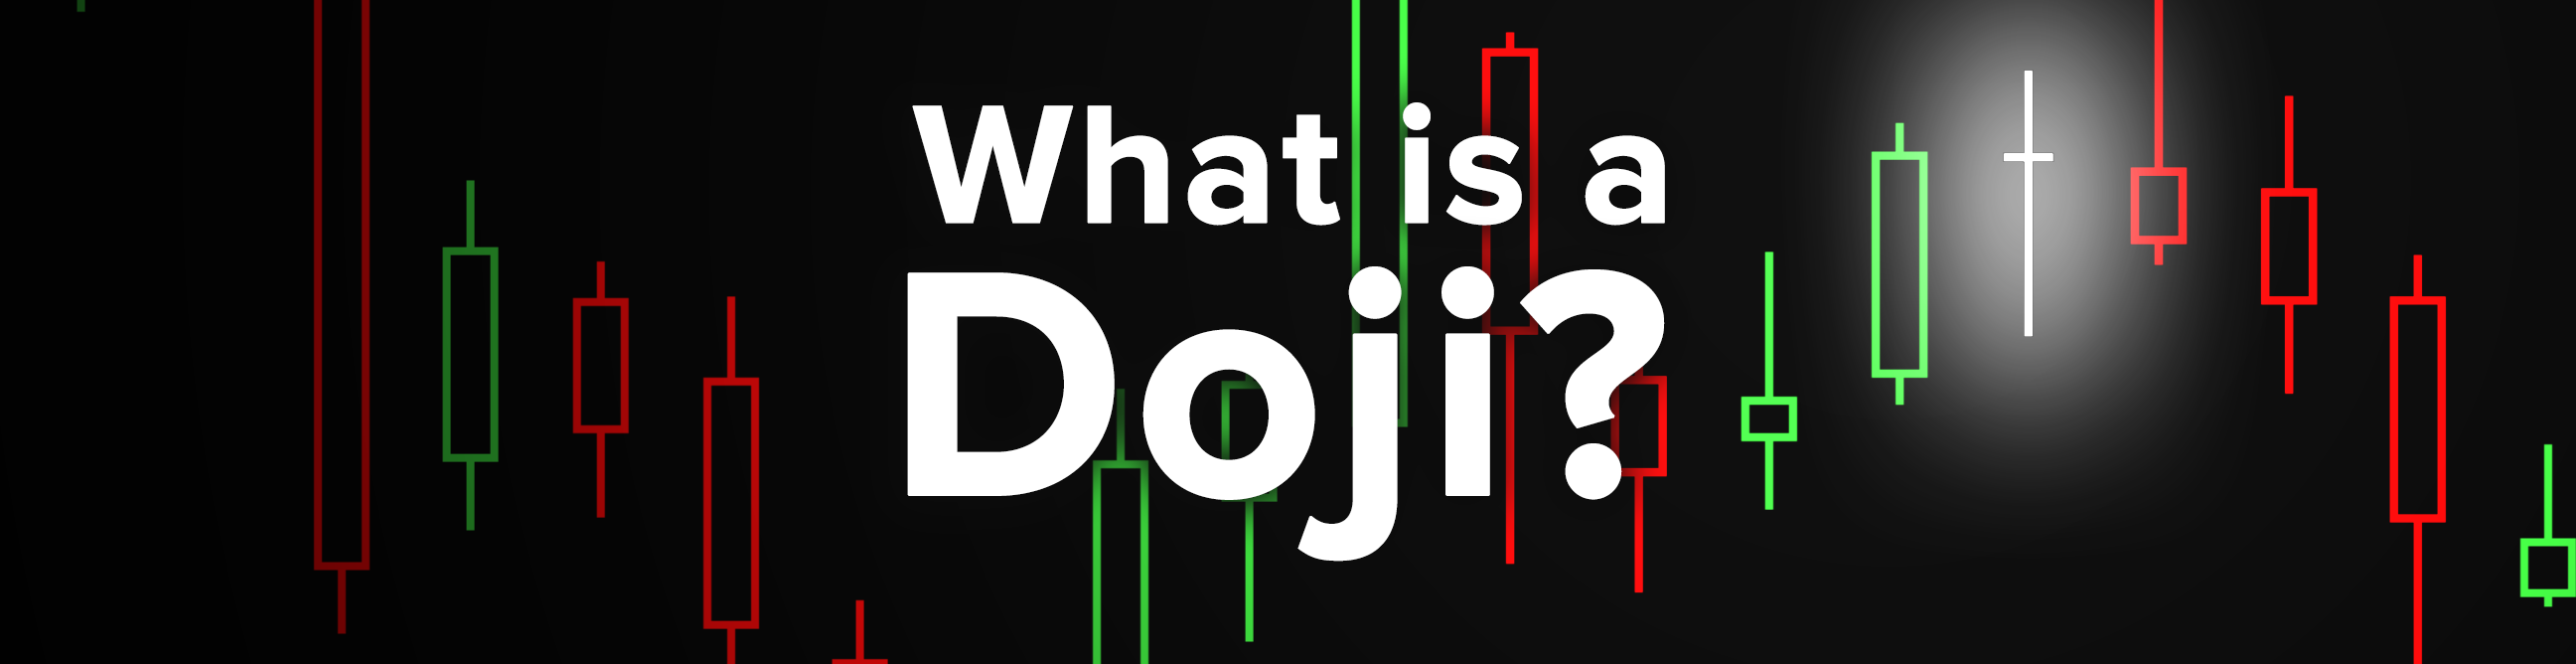 doji candle candlestick chart charting technical analysis trend